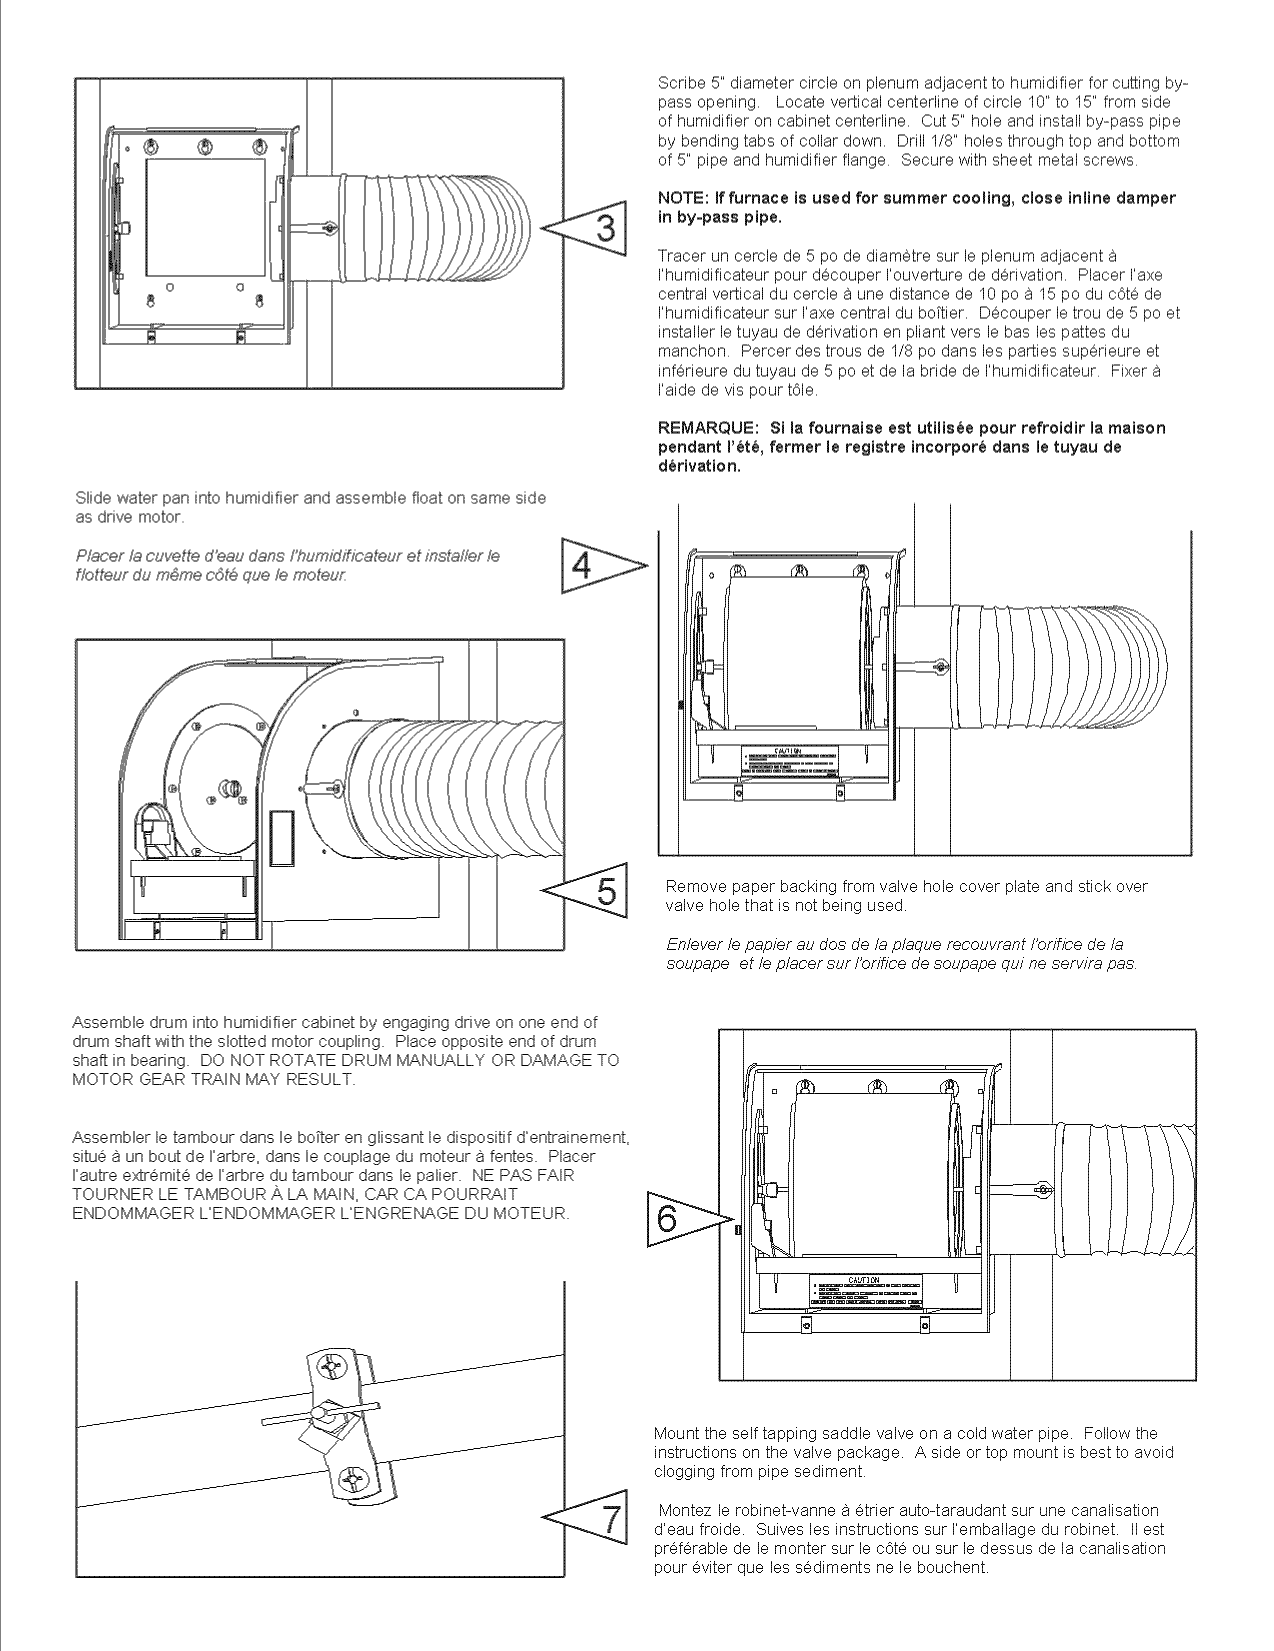 Generalaire Humidifier Wiring Diagram Lennox Bryant On White Rodgers